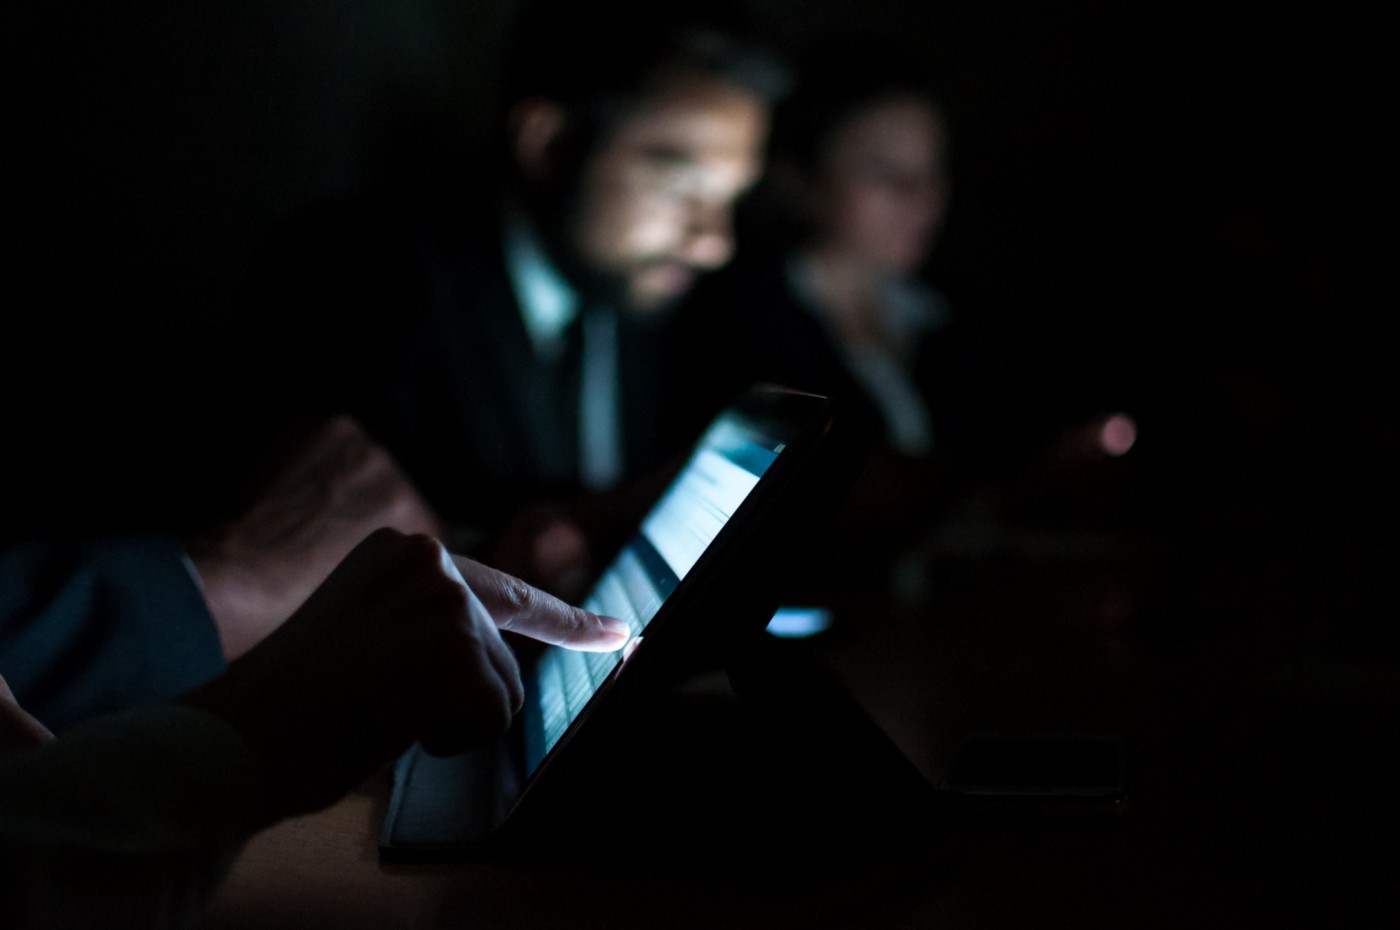 Dark photo of tech workers on tablets.